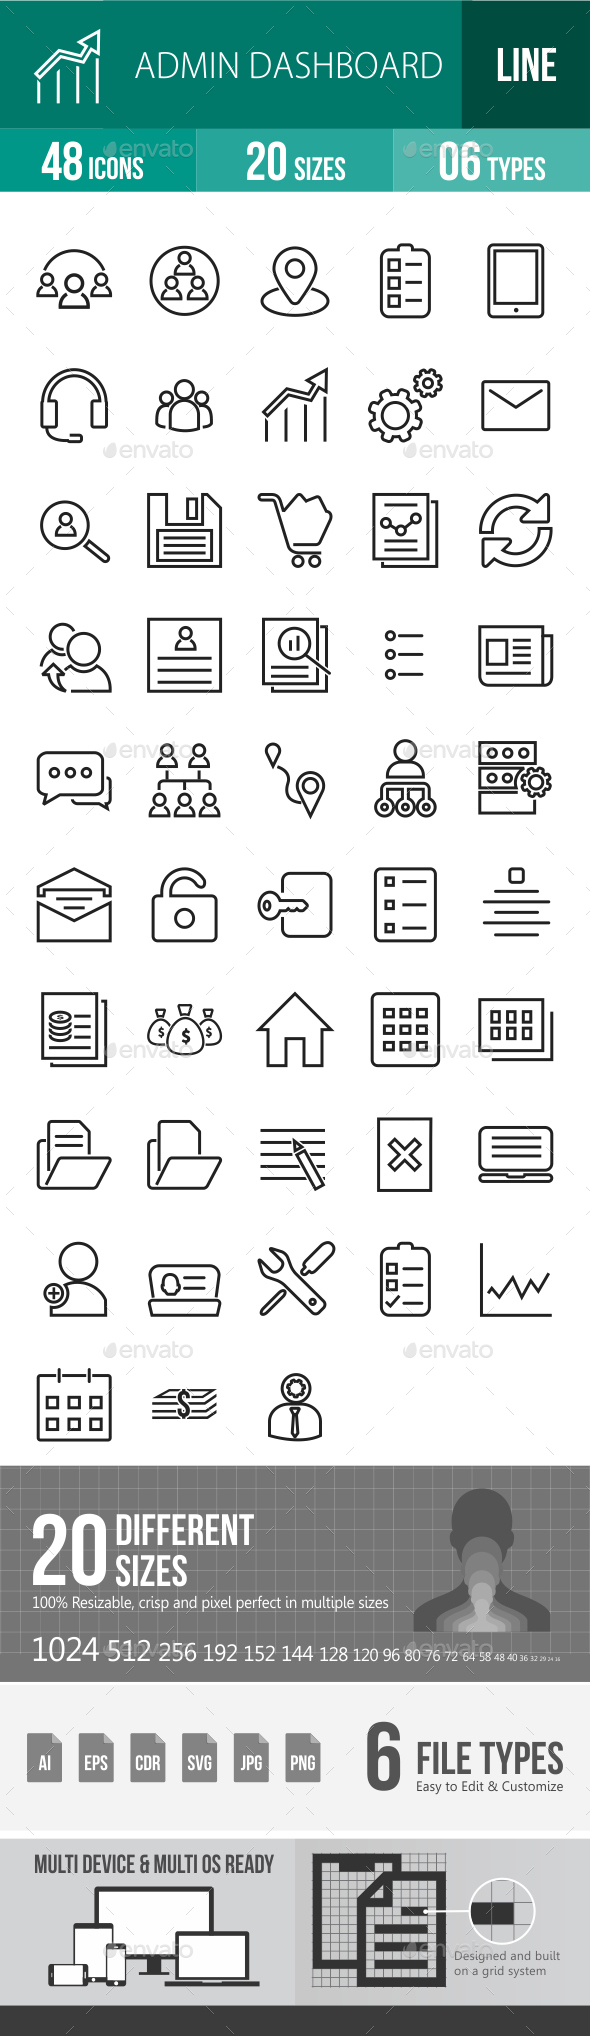 Admin Dashboard Line Icons - Icons